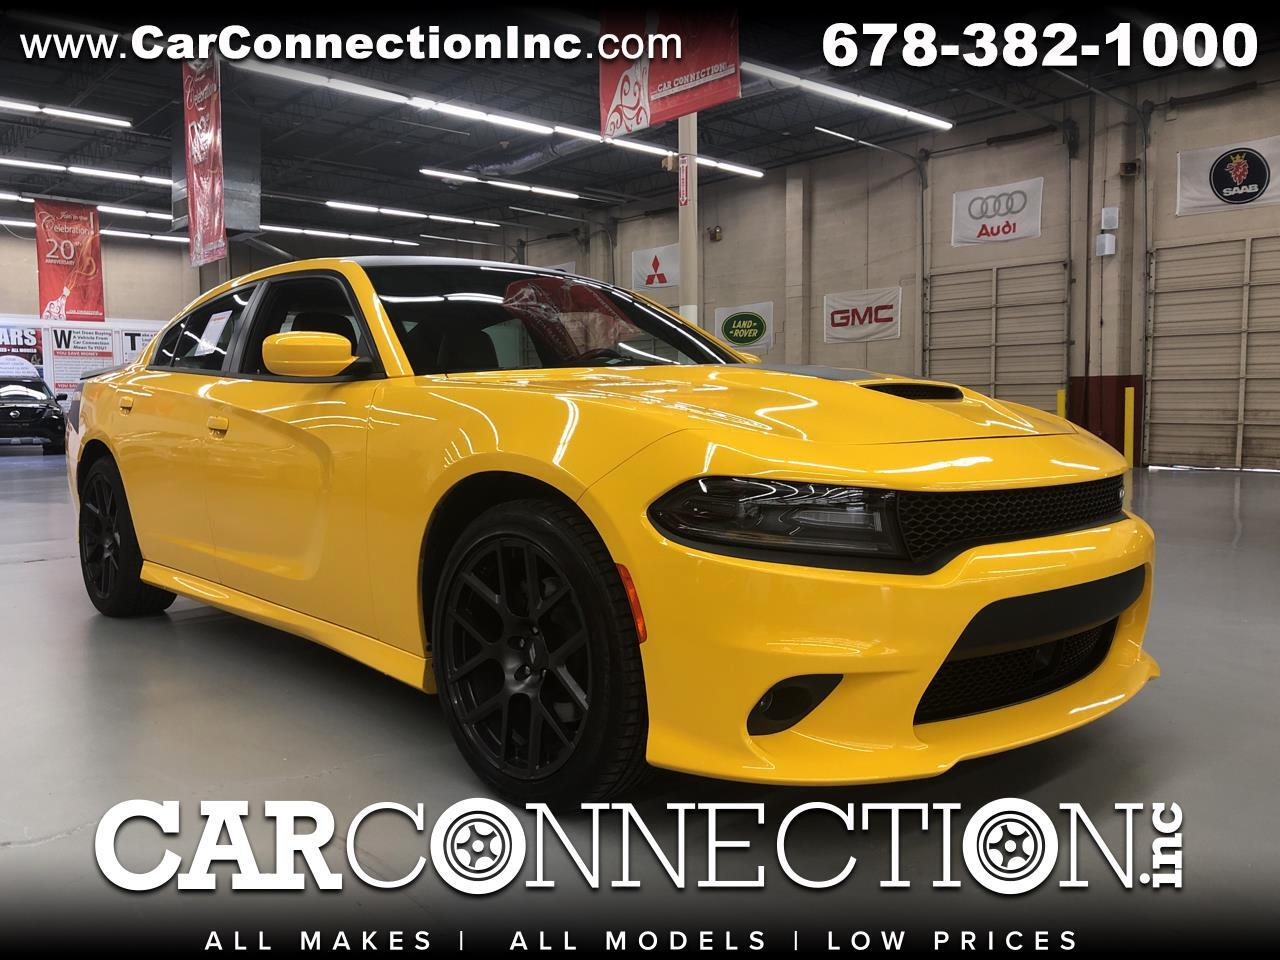 Dodge Charger Daytona RWD 2018